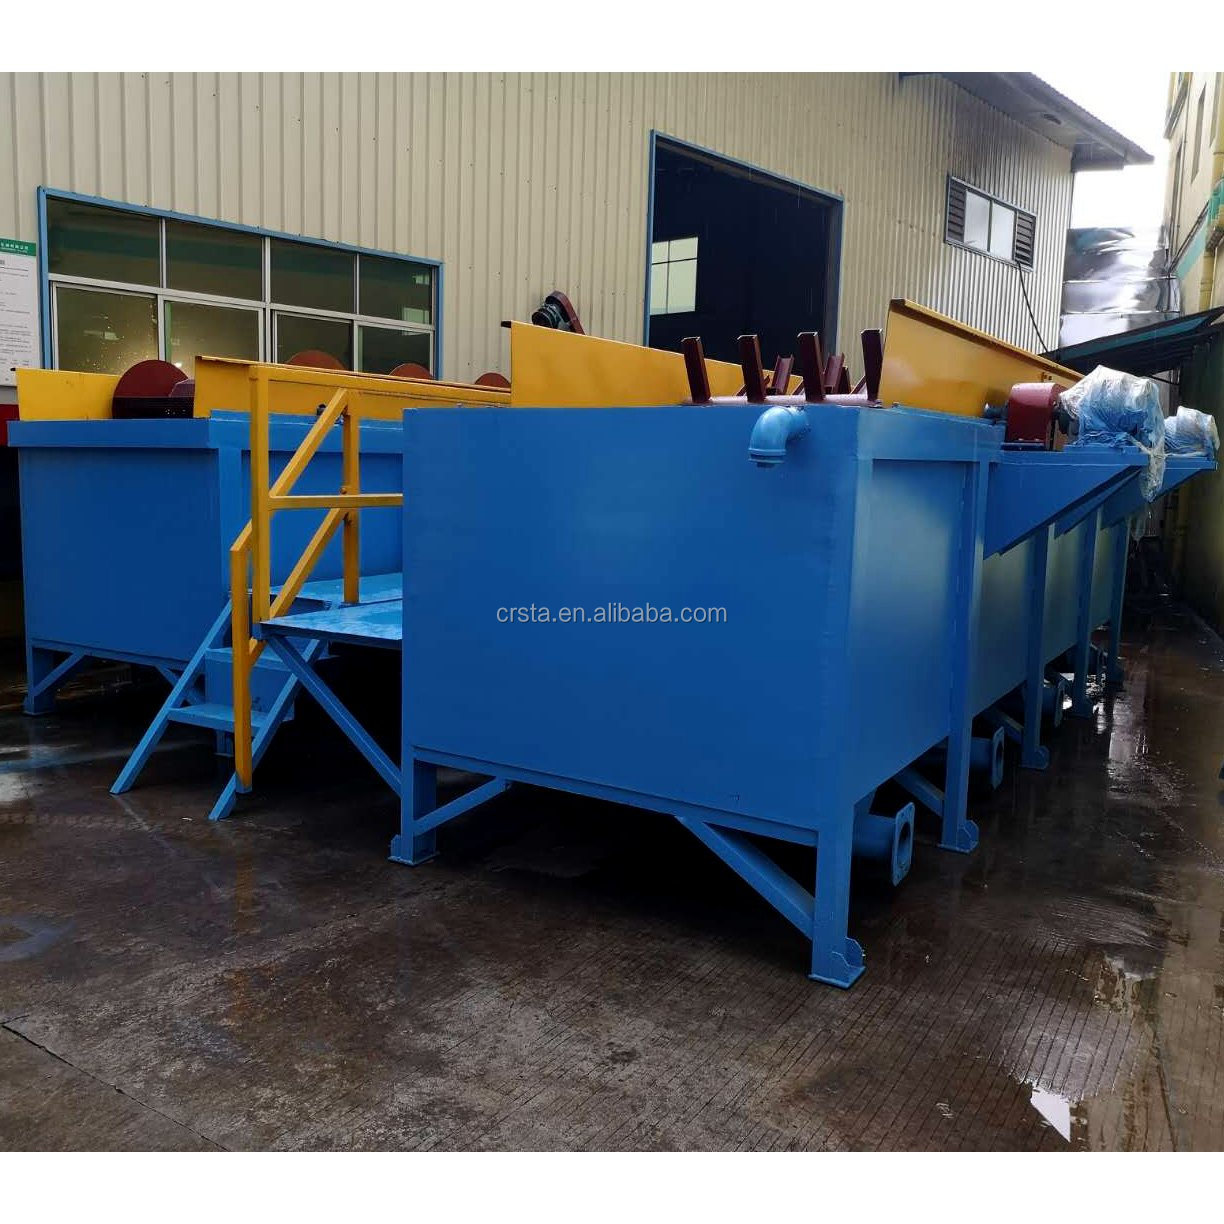 Stainless Steel Plastic PE Film Floating Washing Tank/LDPE Film Sink Floating Washer